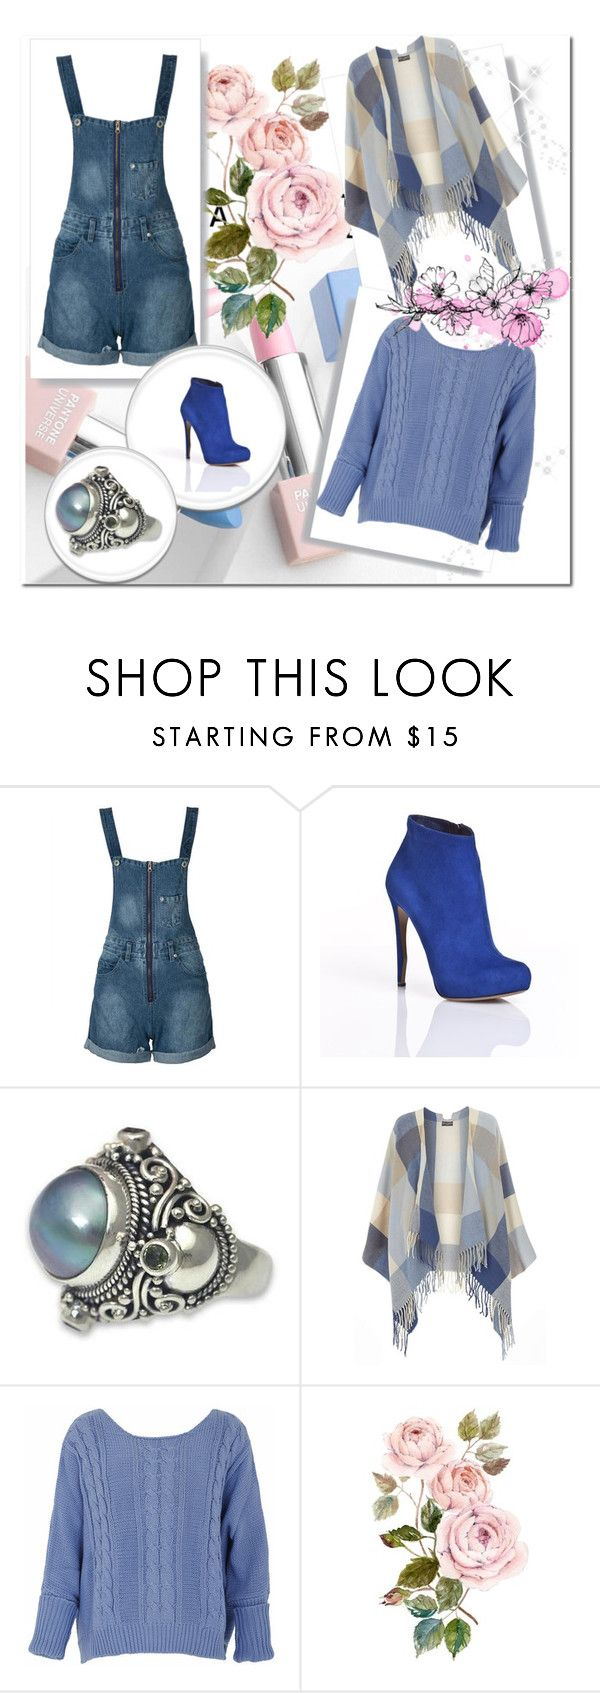 """Sem título #11344"" by nathsouzaz ❤ liked on Polyvore featuring WithChic, Nicholas Kirkwood, NOVICA, Dorothy Perkins, Sephora Collection and Karlsson"